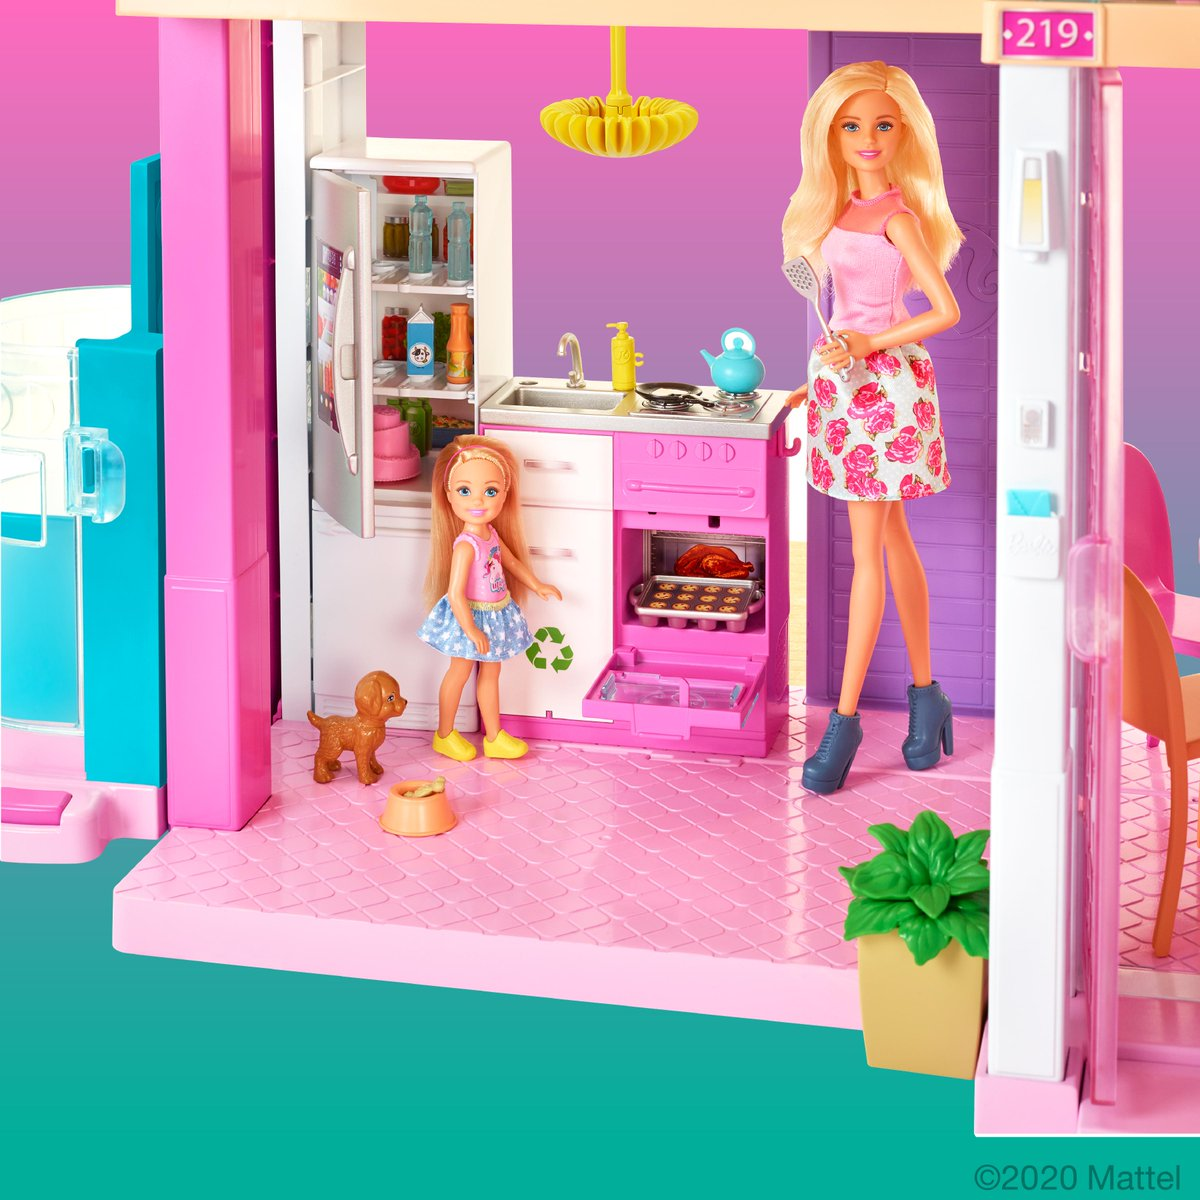 Staying at home? Sounds like a dream! 🏠 See what's going on in the #Barbie Dreamhouse today. dolltasti.cc/Dreamhouse2020…